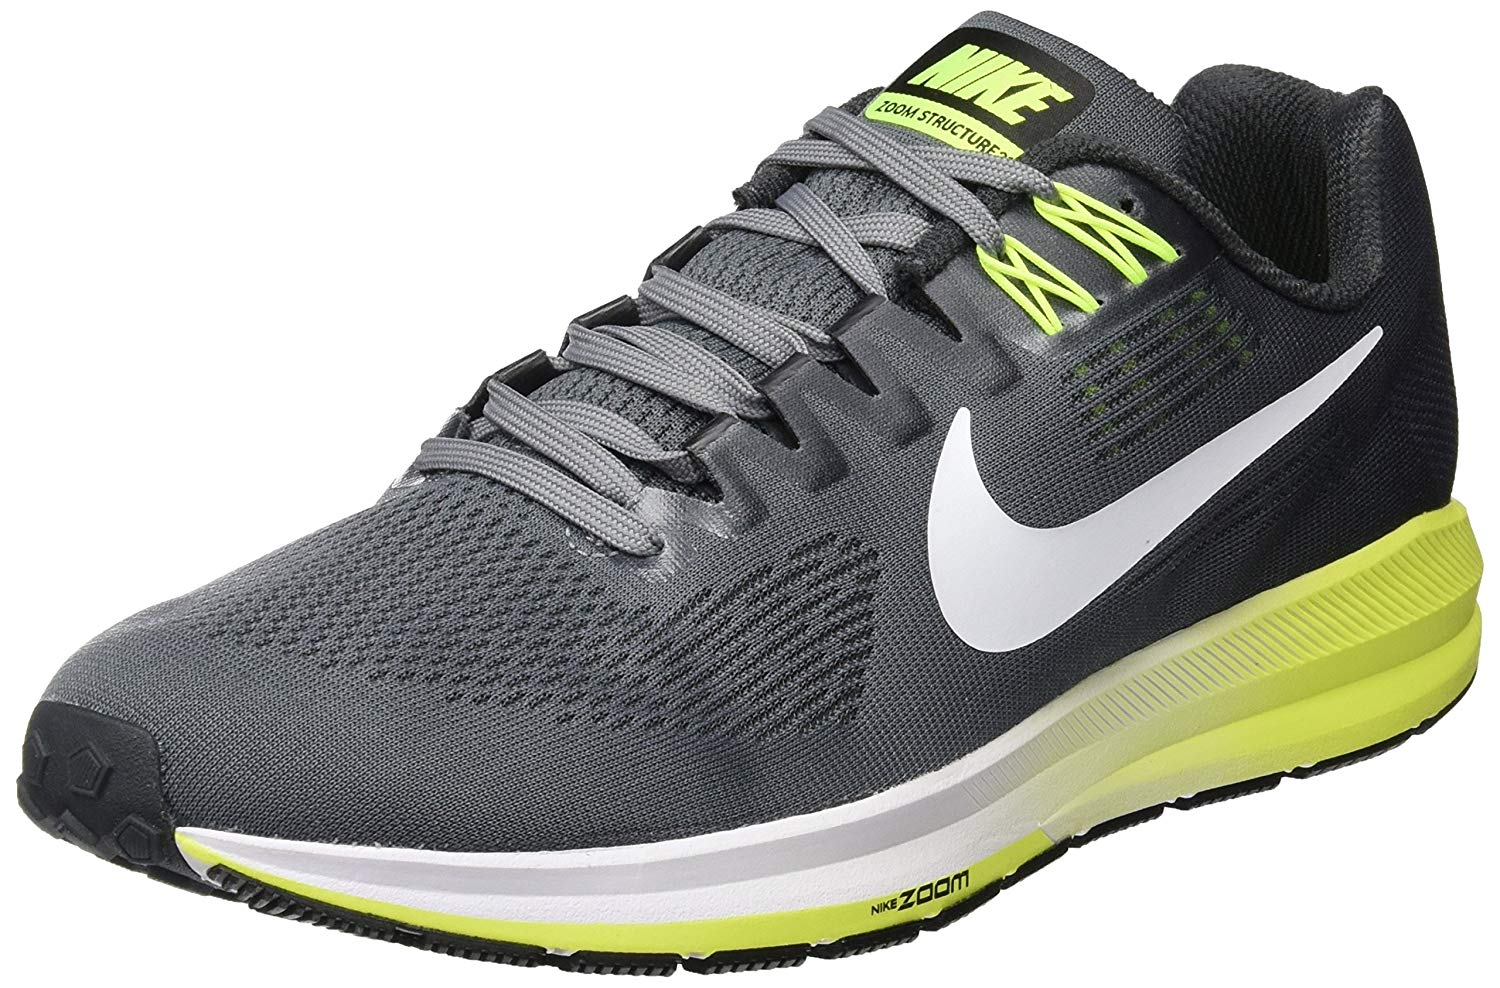 7ec8f010888 Nike Air Zoom Structure 21. This is an angled view of the Zoom Structure 21  ...